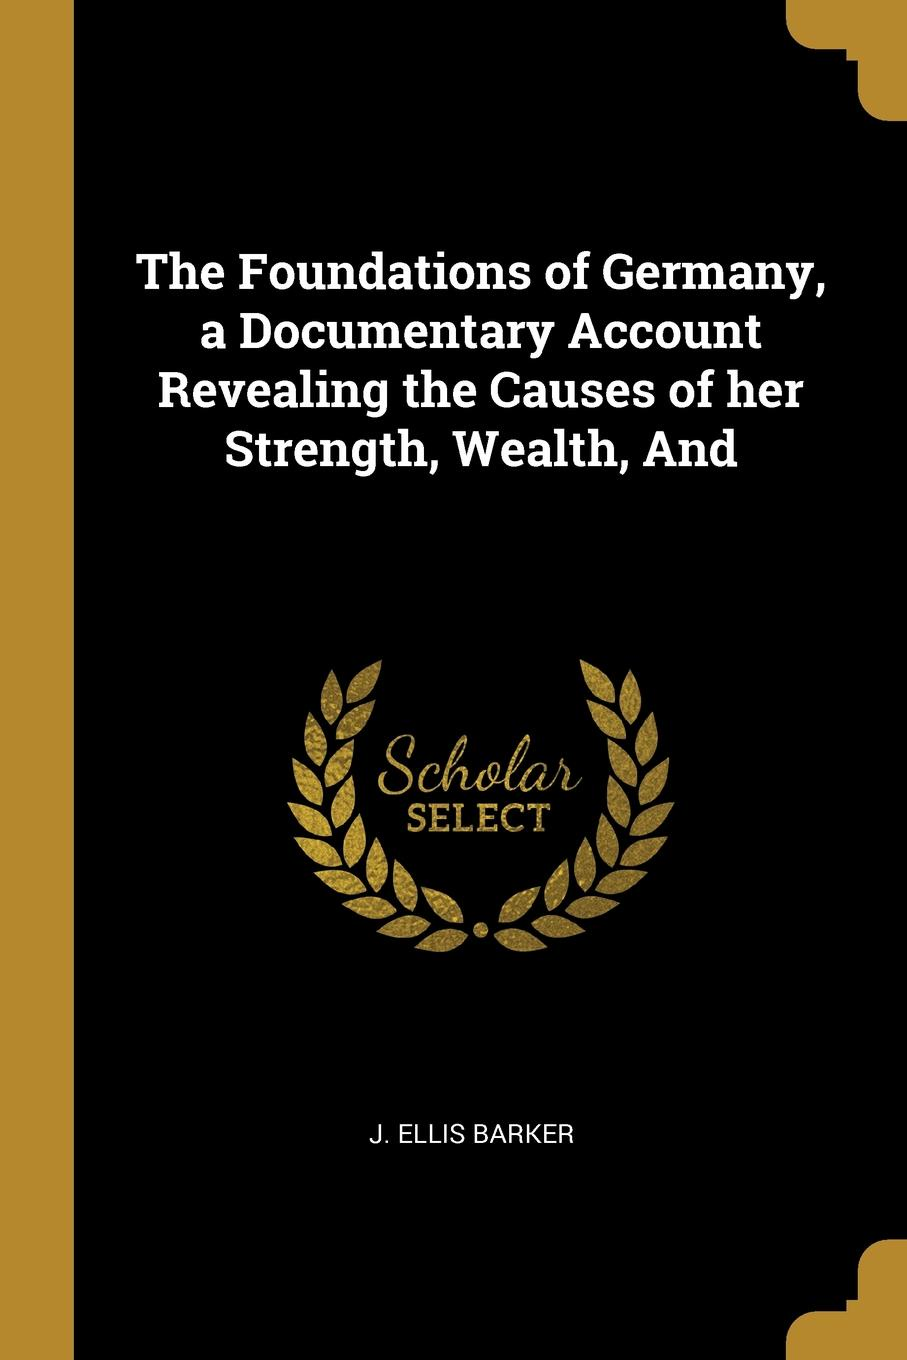 J. Ellis Barker The Foundations of Germany, a Documentary Account Revealing the Causes of her Strength, Wealth, And j ellis barker the foundations of germany a documentary account revealing the causes of her strength wealth and efficiency